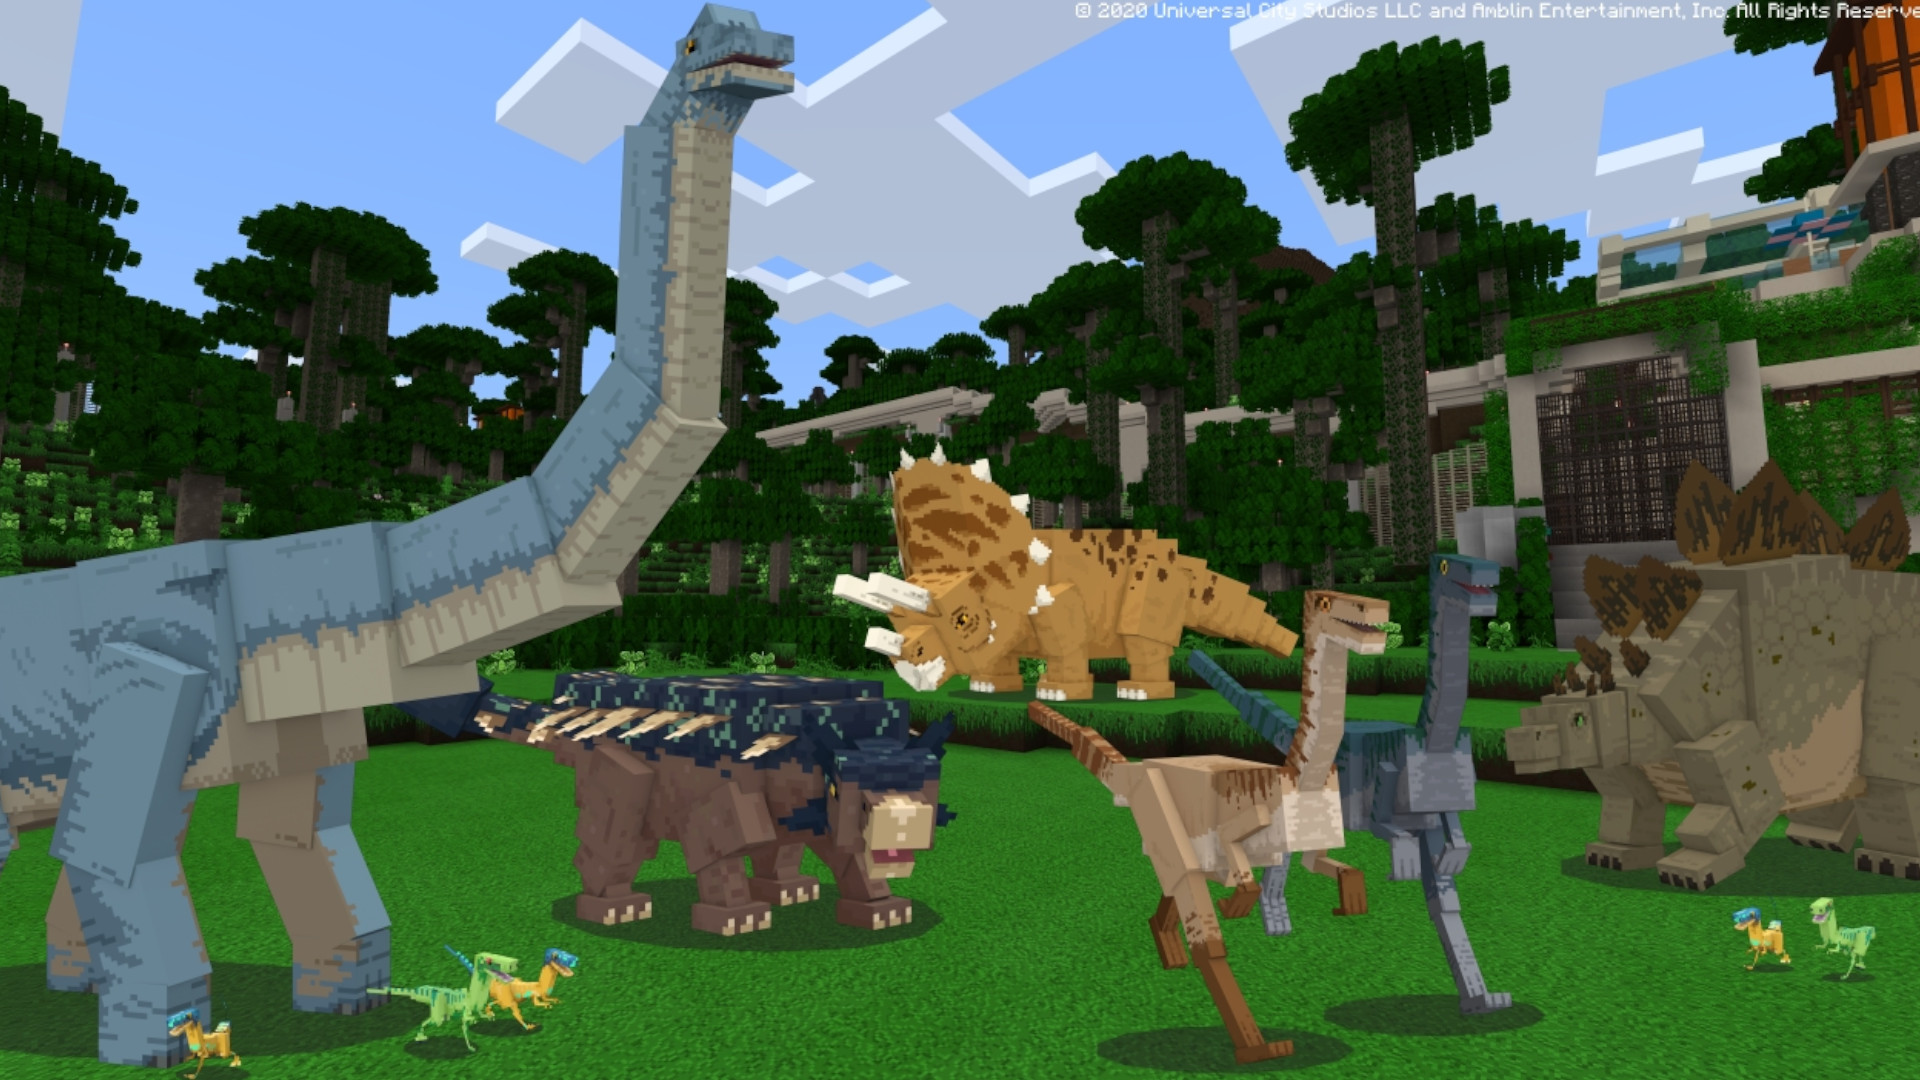 Mojang releases a Jurassic World DLC to Minecraft